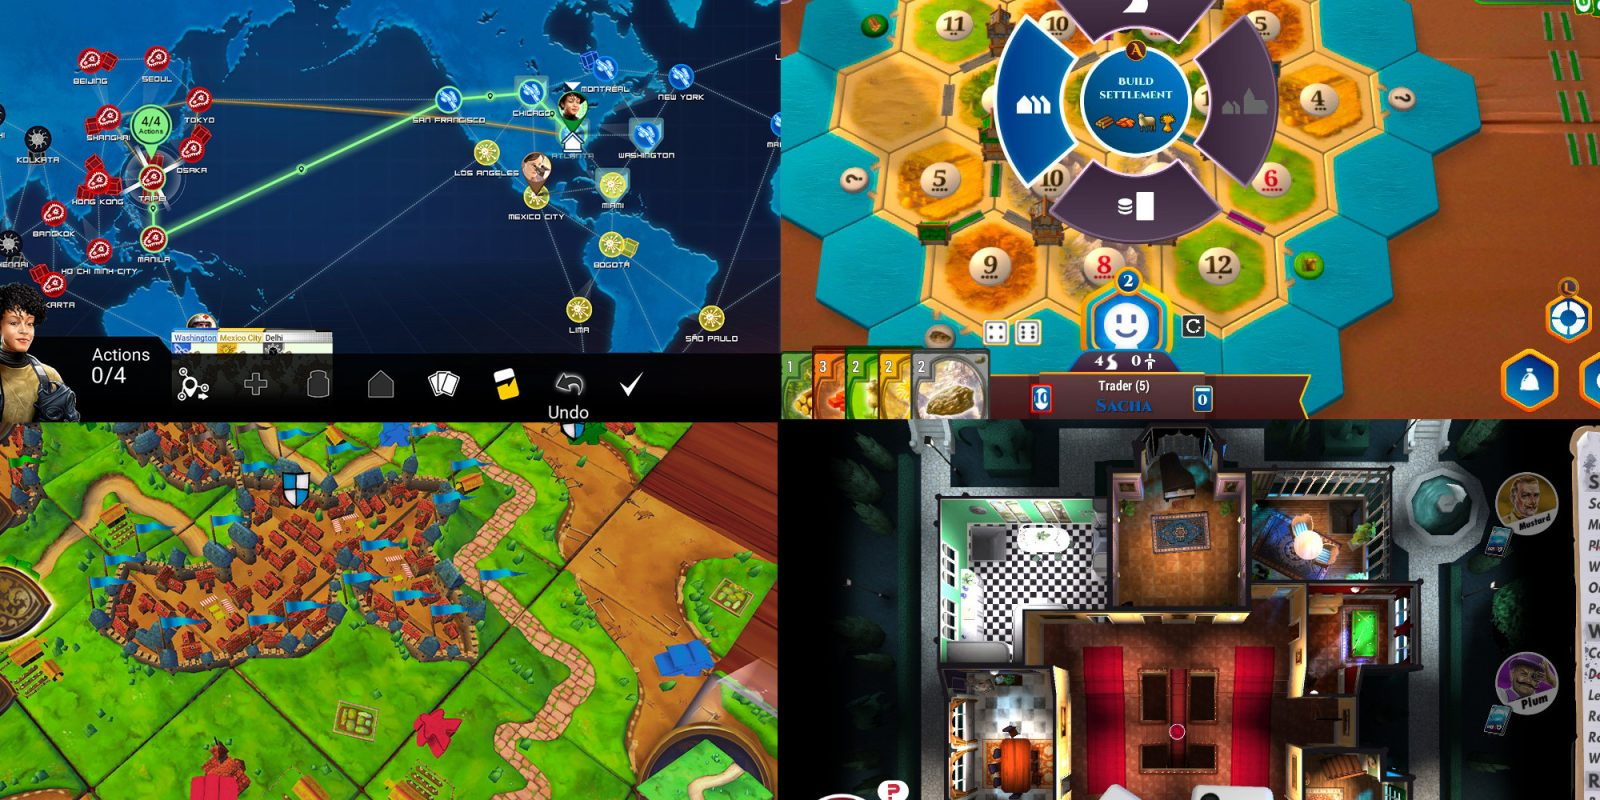 Nintendo Switch board games up to 50% off: Catan, Clue, BATTLESHIP, more